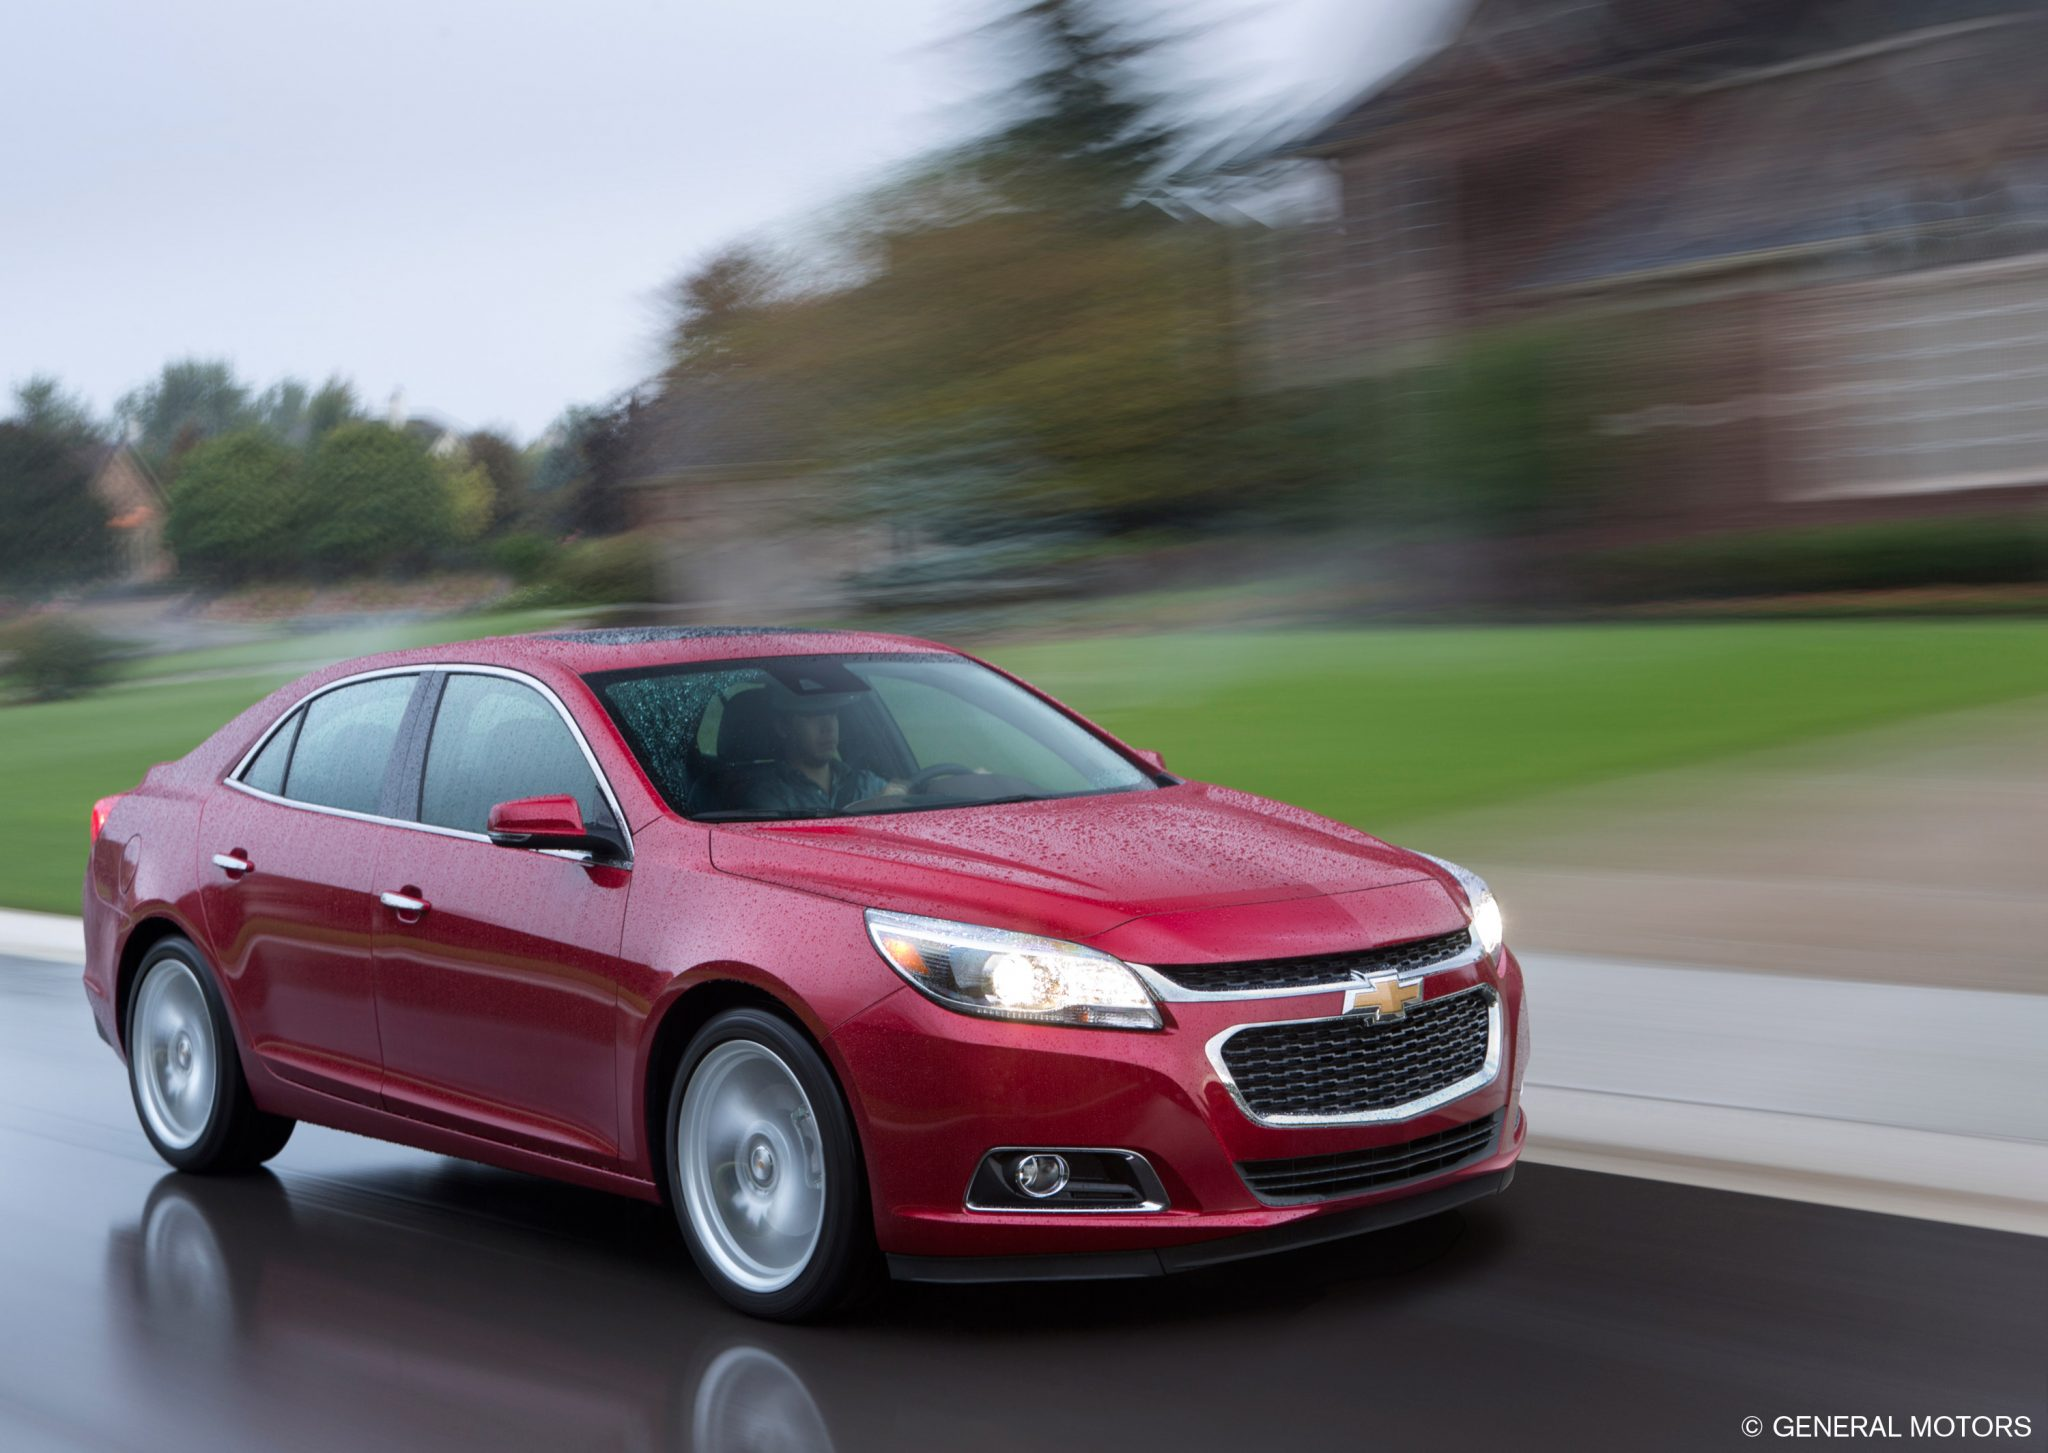 Chevrolet protects customers with safety technology